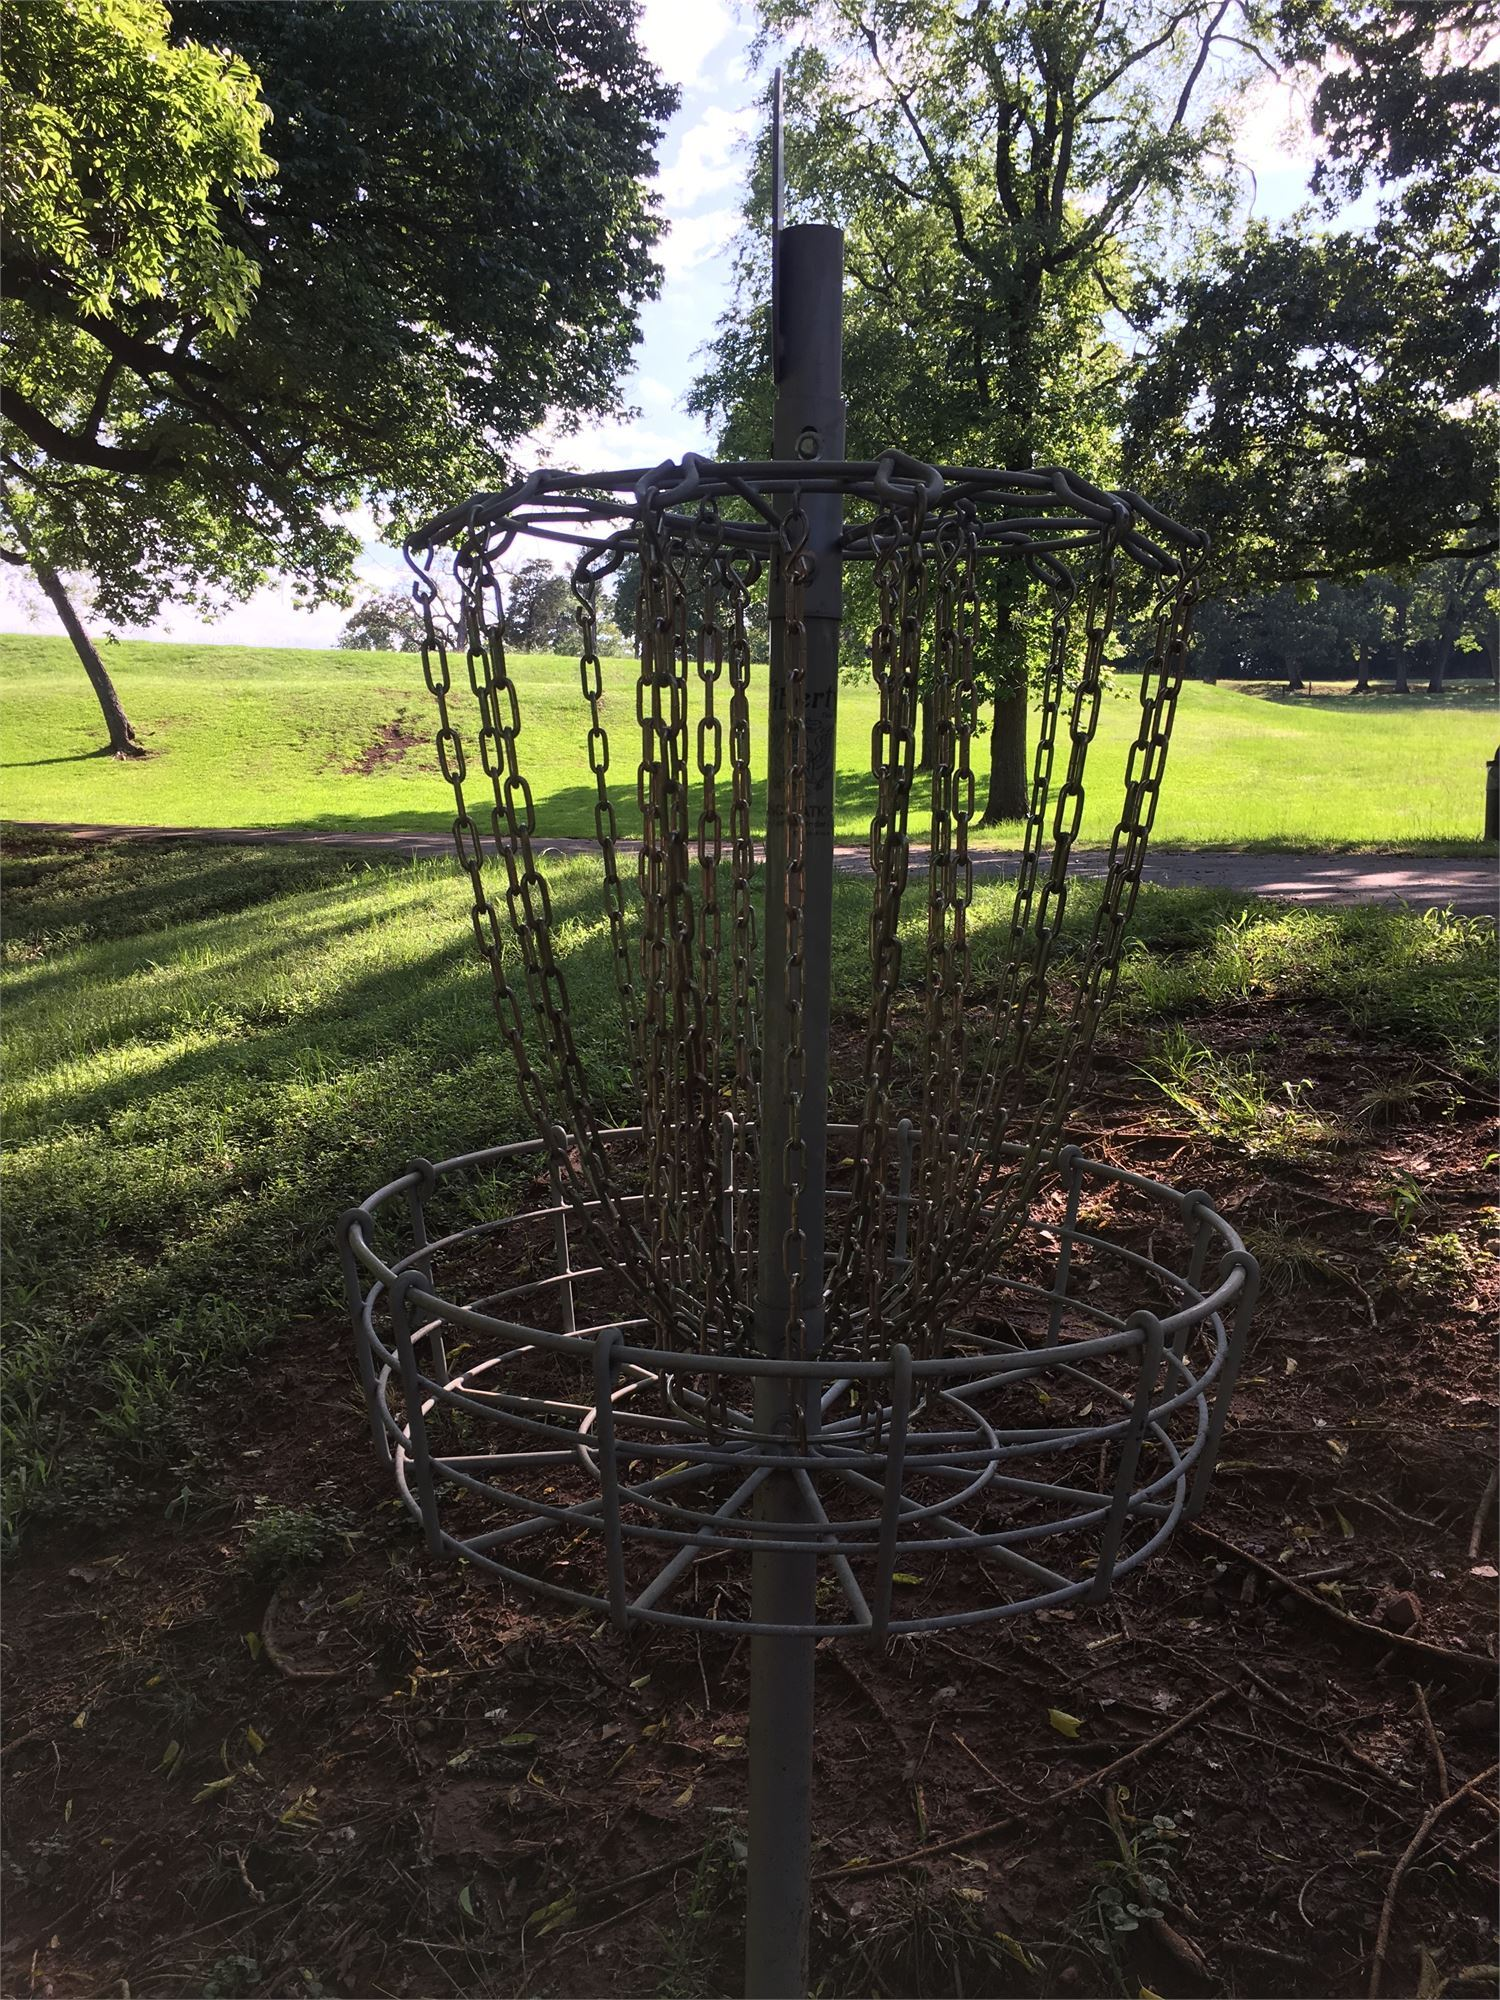 Disc Golf Course in Greens Park